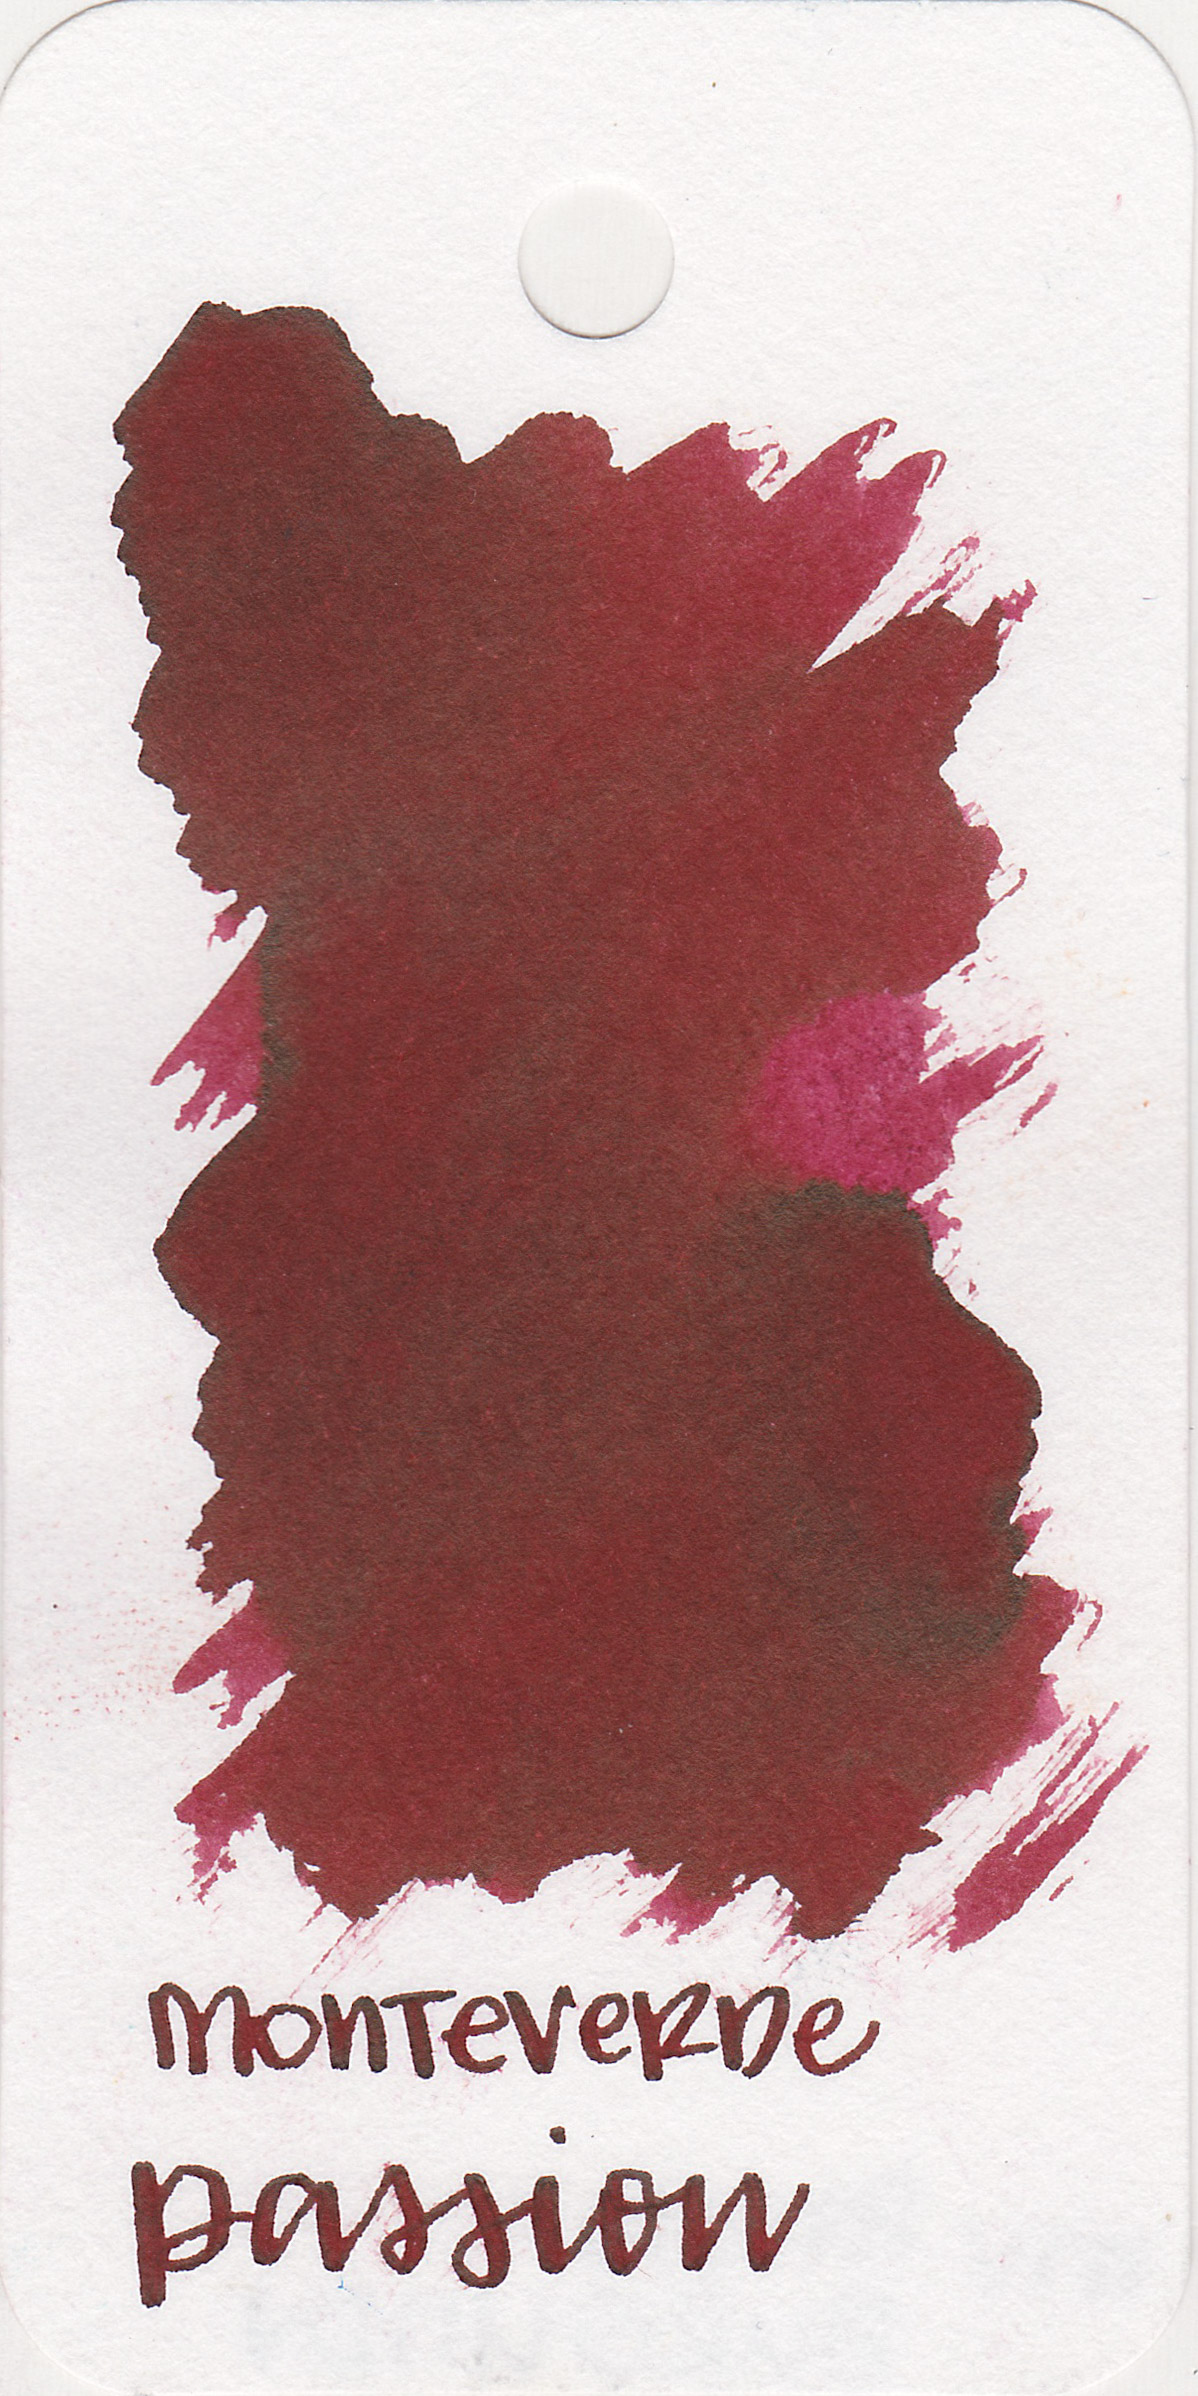 The color: - Passion is a dark burgundy, which can look almost pink in some instances.